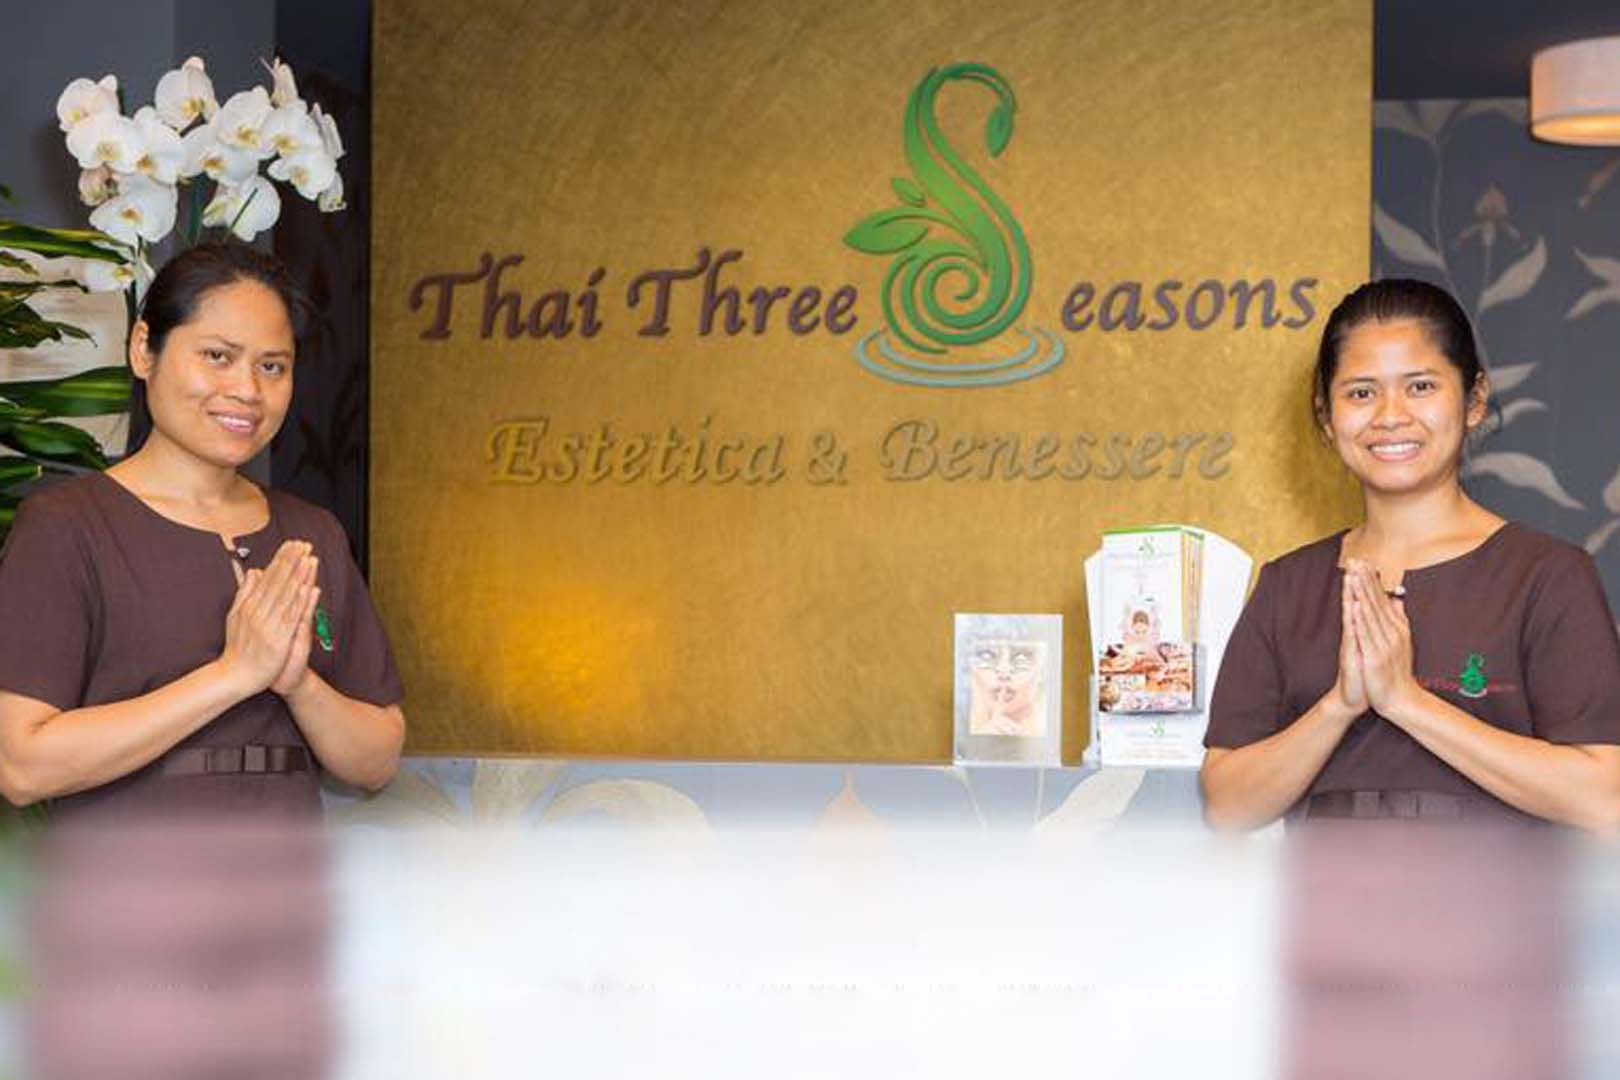 Thai Three Seasons